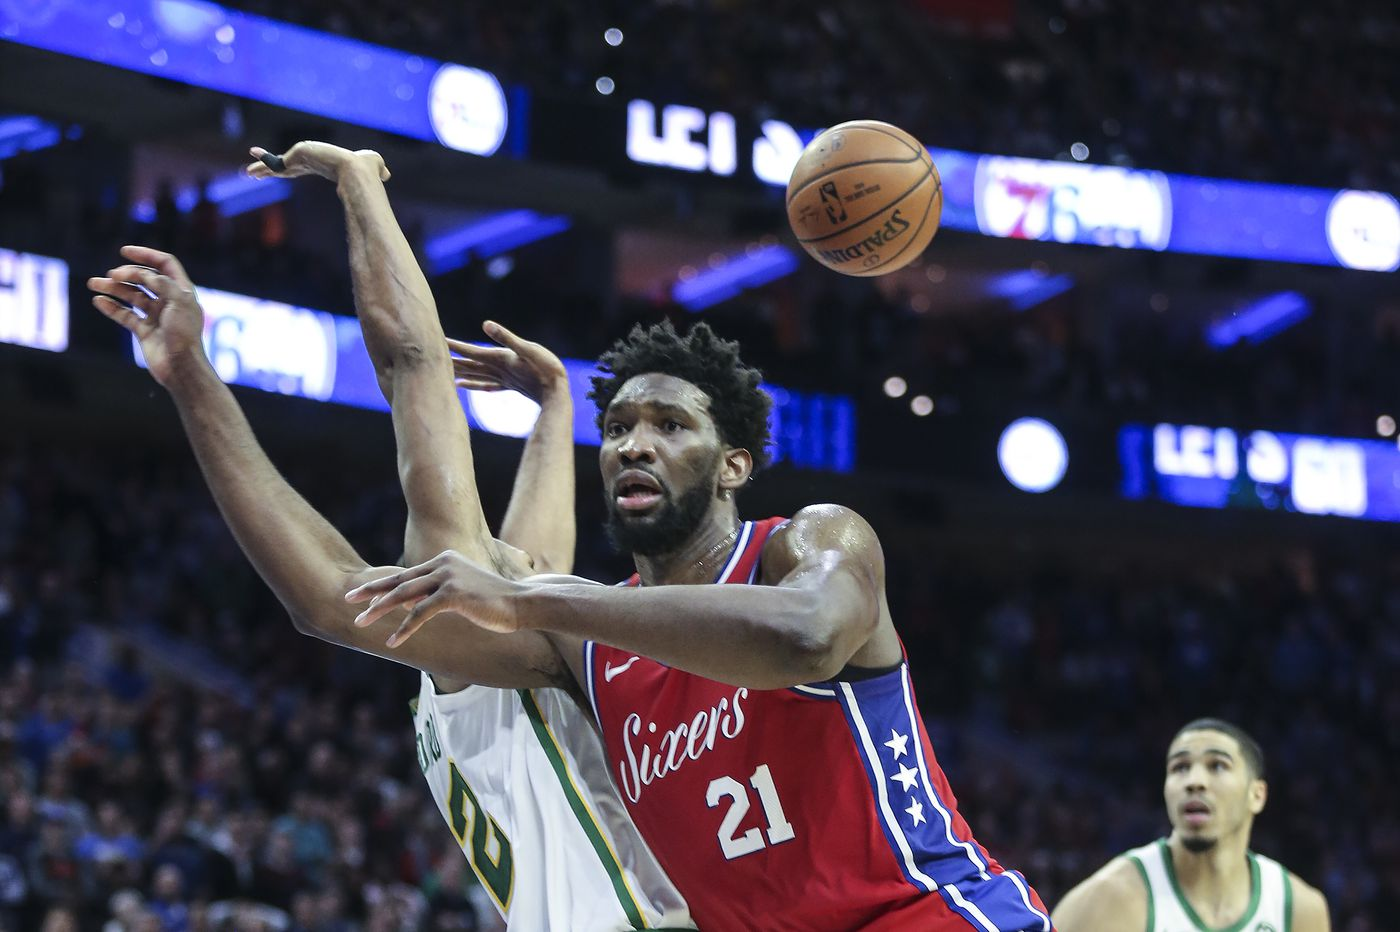 Sixers' Joel Embiid fined $25,000 for criticism of officials